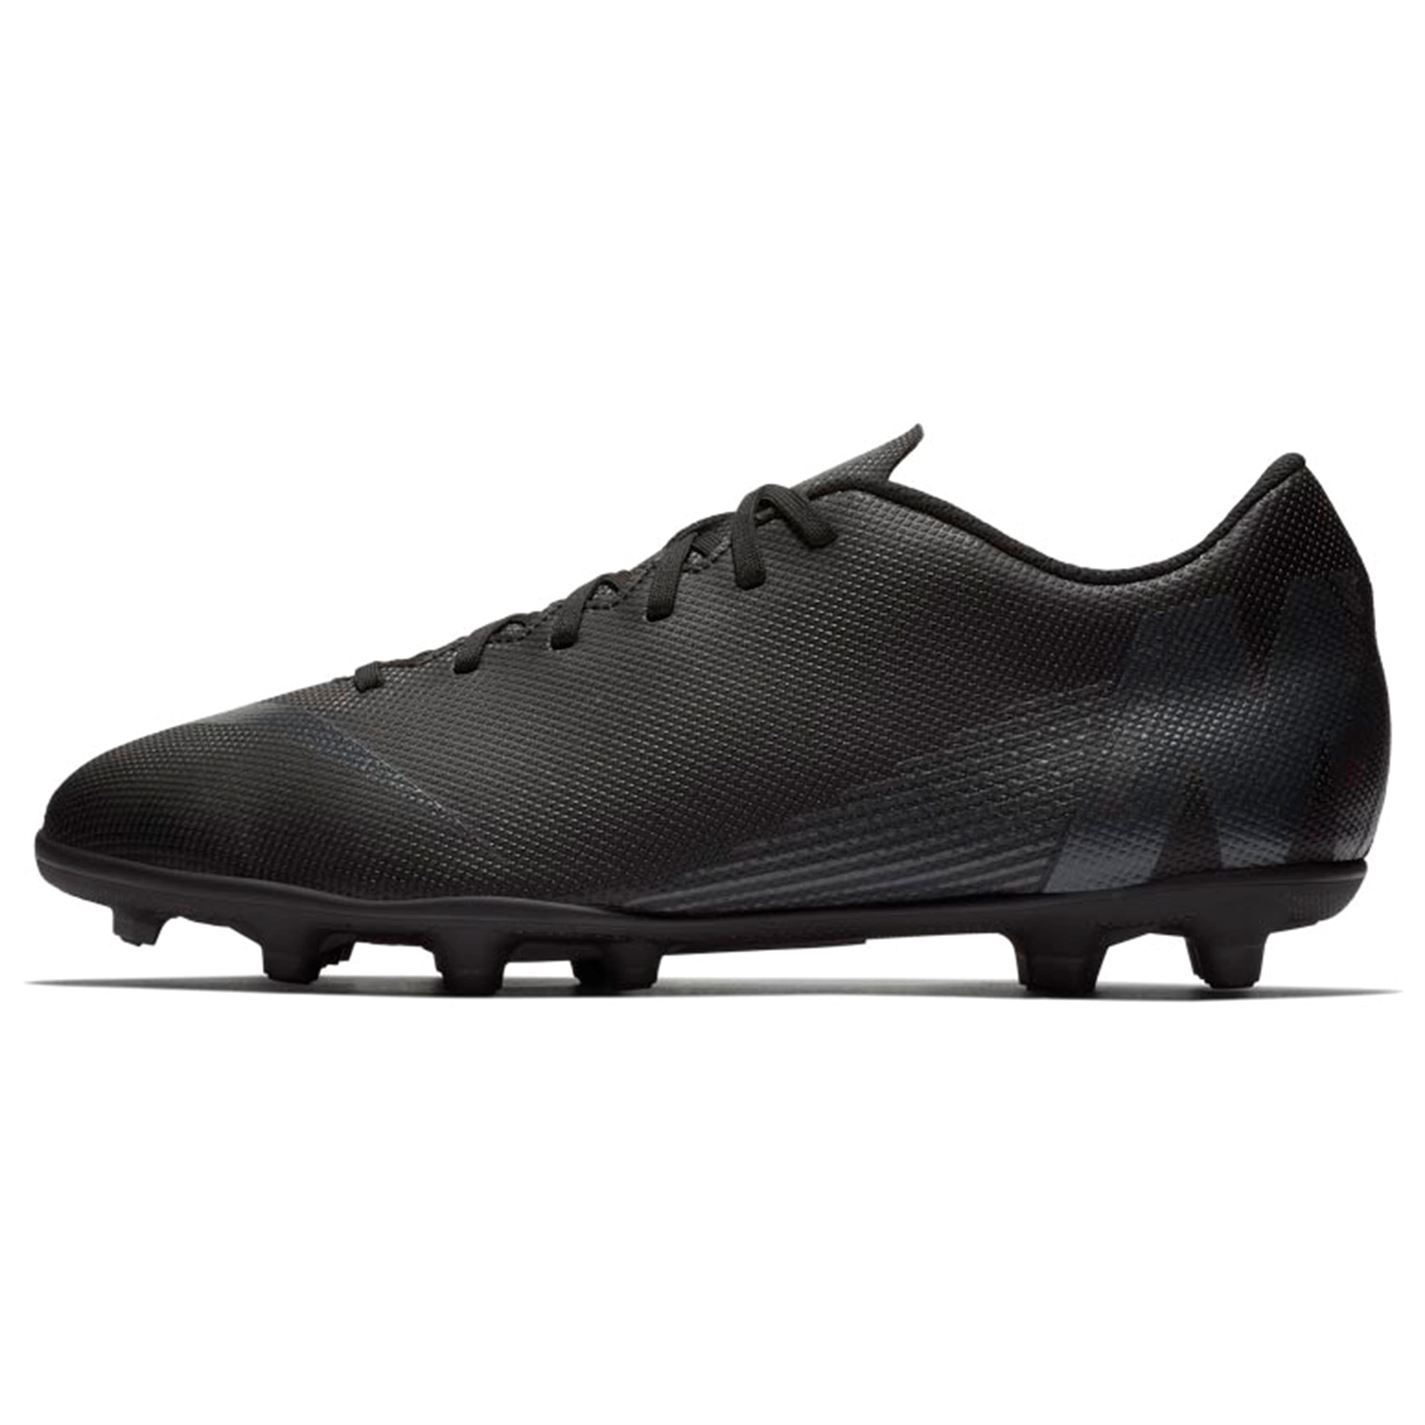 3d3c87d066d2 Details about Nike Mercurial Vapor Club FG Firm Ground Football Boots Mens  Black Soccer Cleats